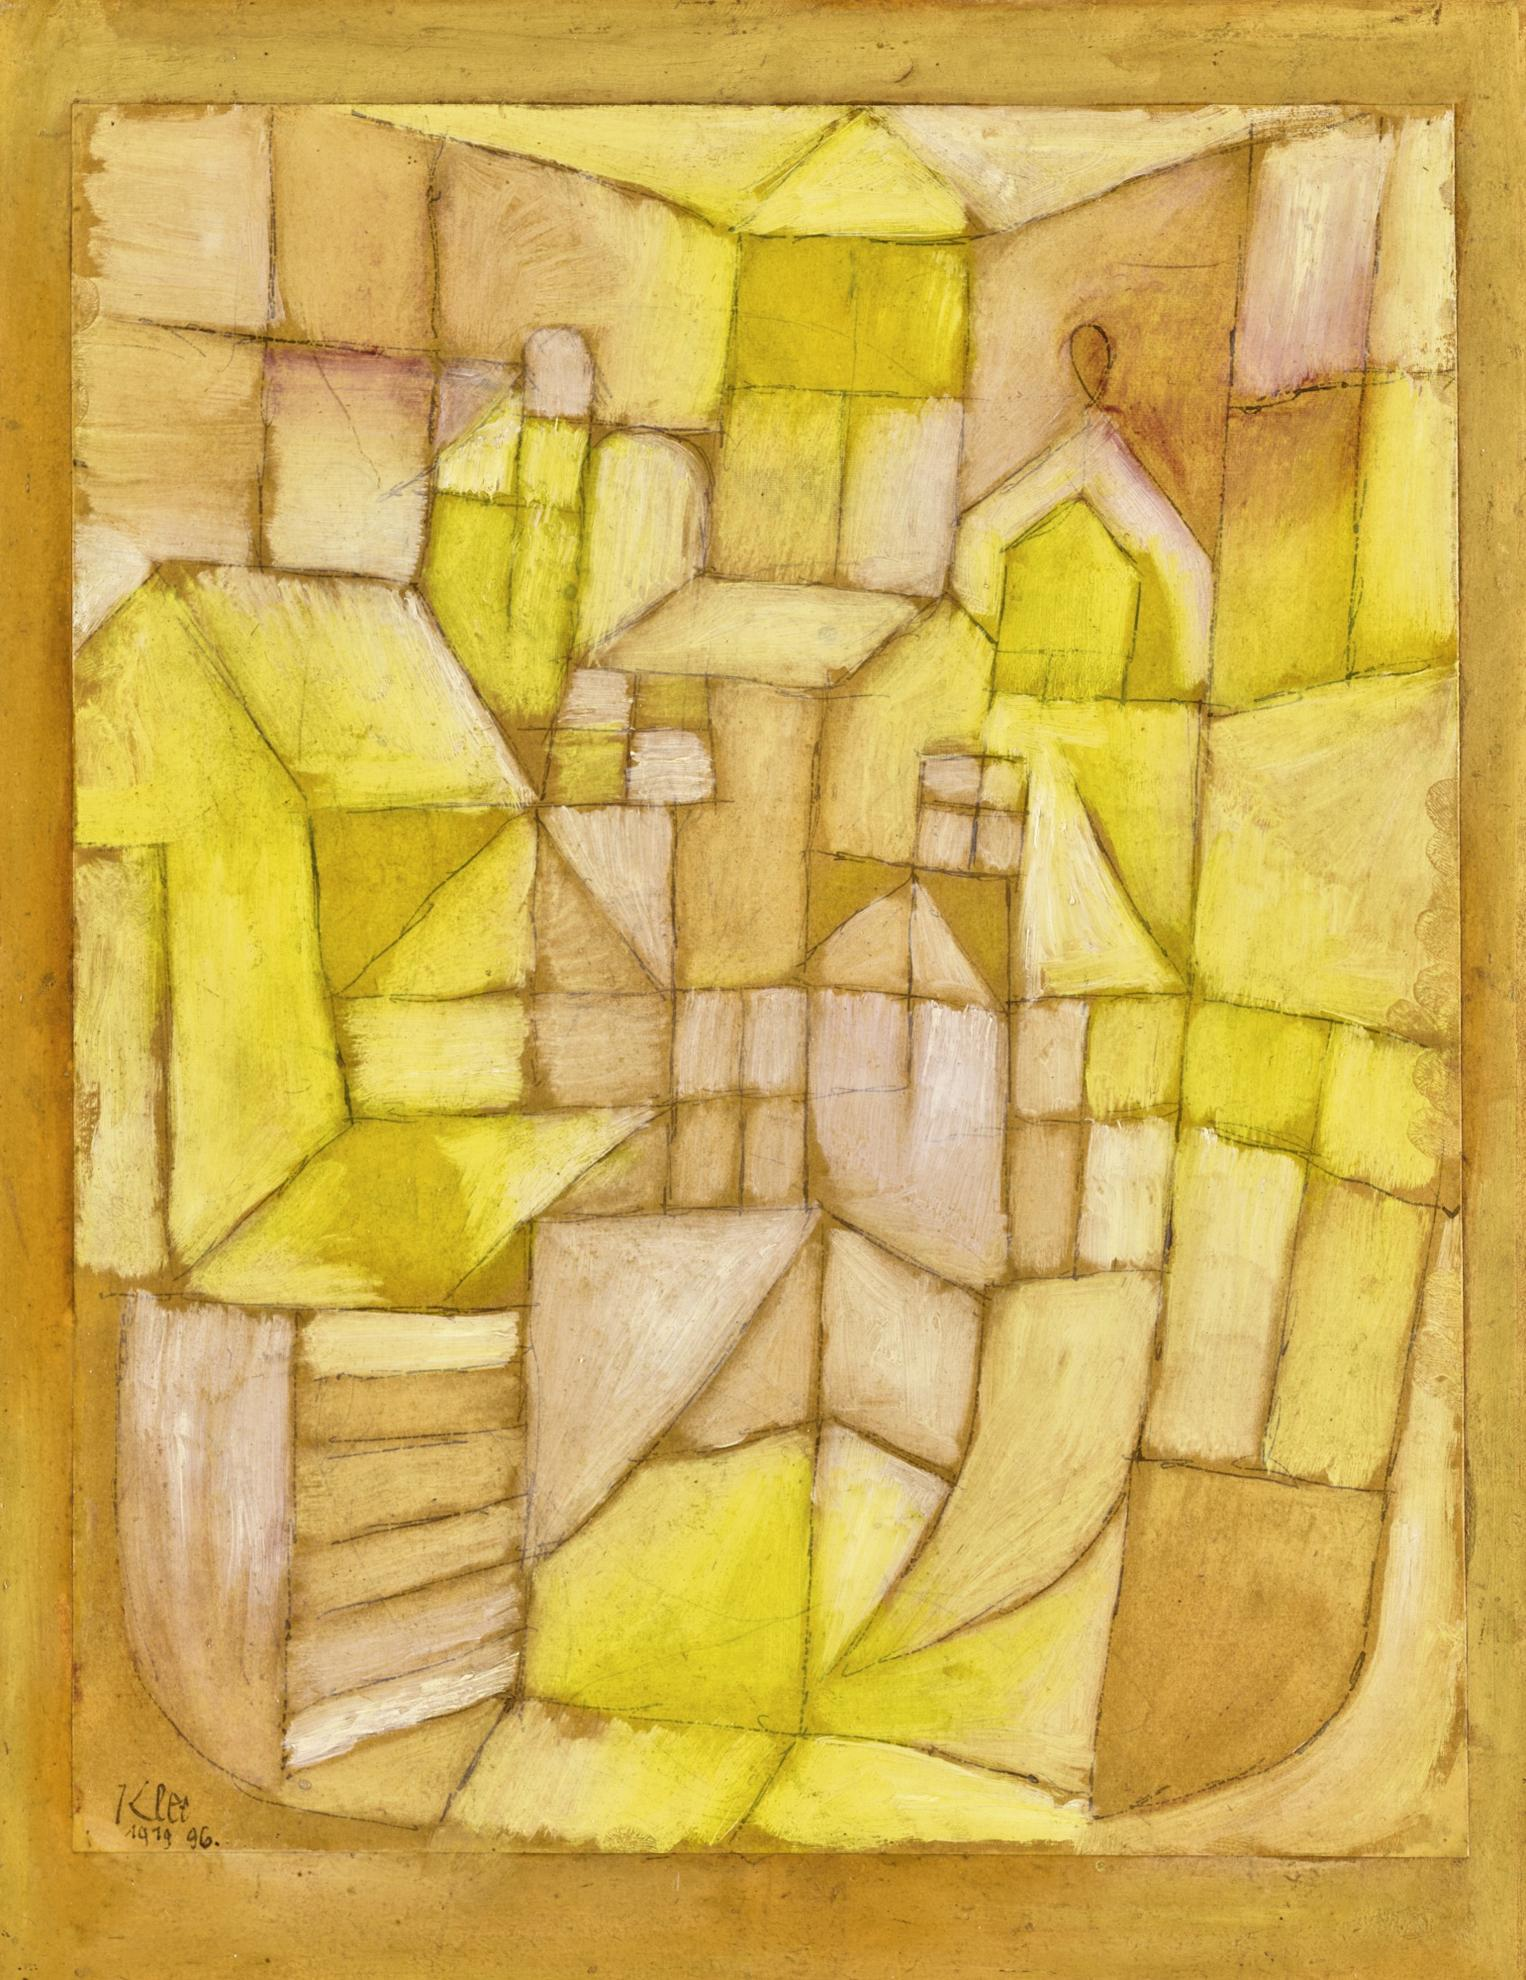 Paul Klee-Fenster Und Dacher (Gelb-Rot) (Windows And Roofs - Yellow-Red)-1919